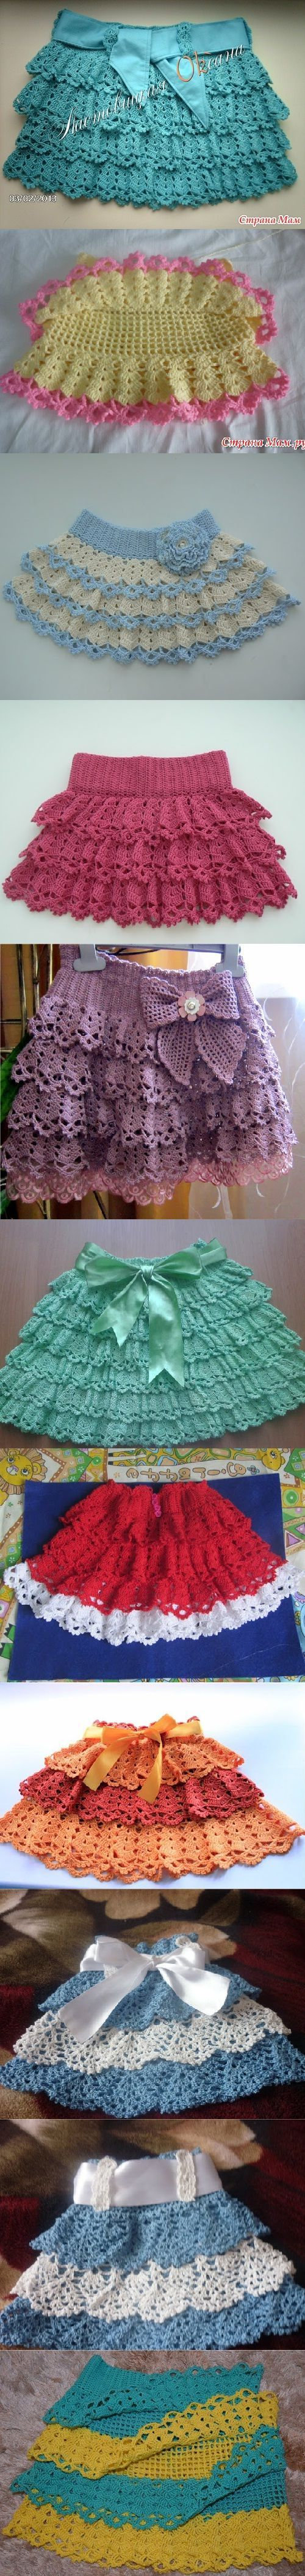 #skirt #design #pattern #crochet #knit #video #instruction